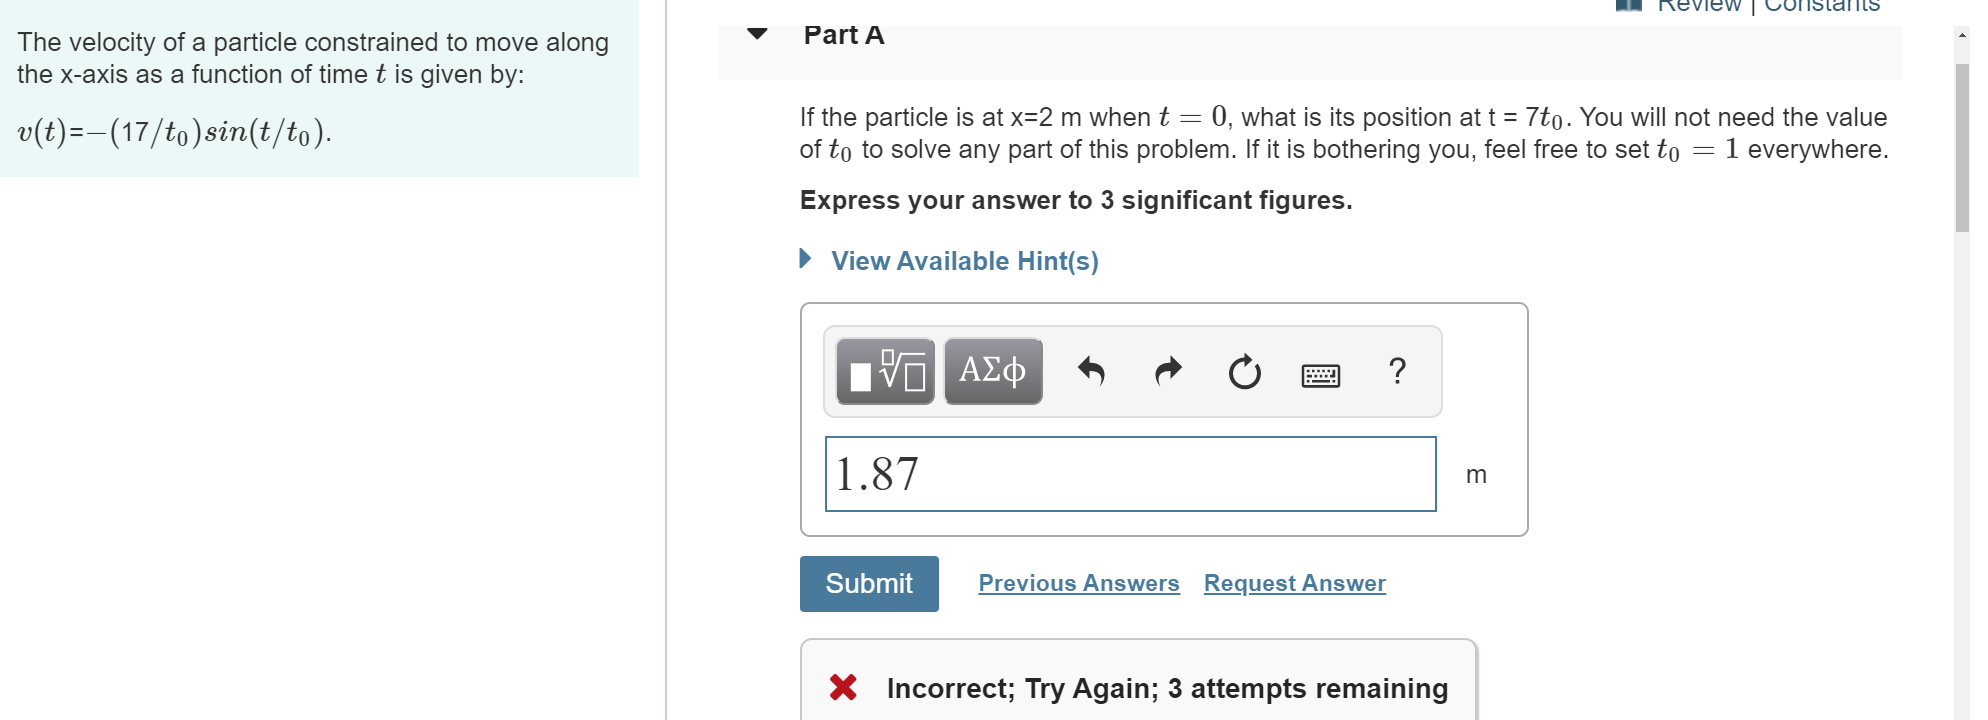 L Review Constants Part A The velocity of a particle constrained to move along the x-axis as a function of time t is given by: If the particle is at x-2 m when t 0, what is its position at t 7to. You will not need the value of to to solve any part of this problem. If it is bothering you, feel free to set to = v(t)-(17/to)sin(t/to) 1 everywhere. Express your answer to 3 significant figures. View Available Hint(s) ν ΑΣφ ? 1.87 m Previous Answers Request Answer Submit Incorrect; Try Again; 3 attempts remaining